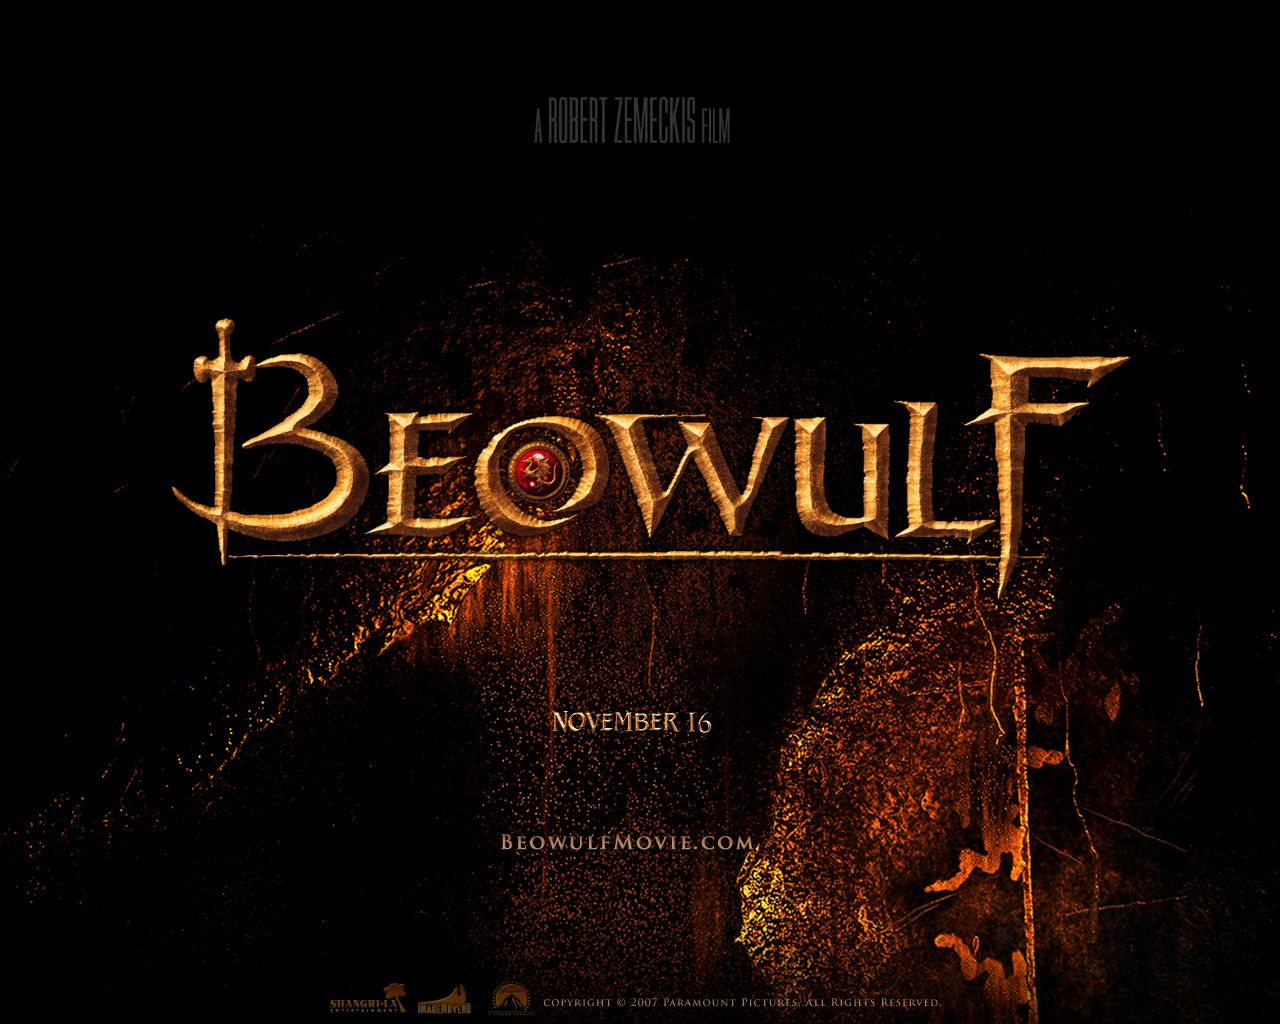 beowulf Define beowulf: a legendary geatish warrior and hero of the old english poem beowulf.